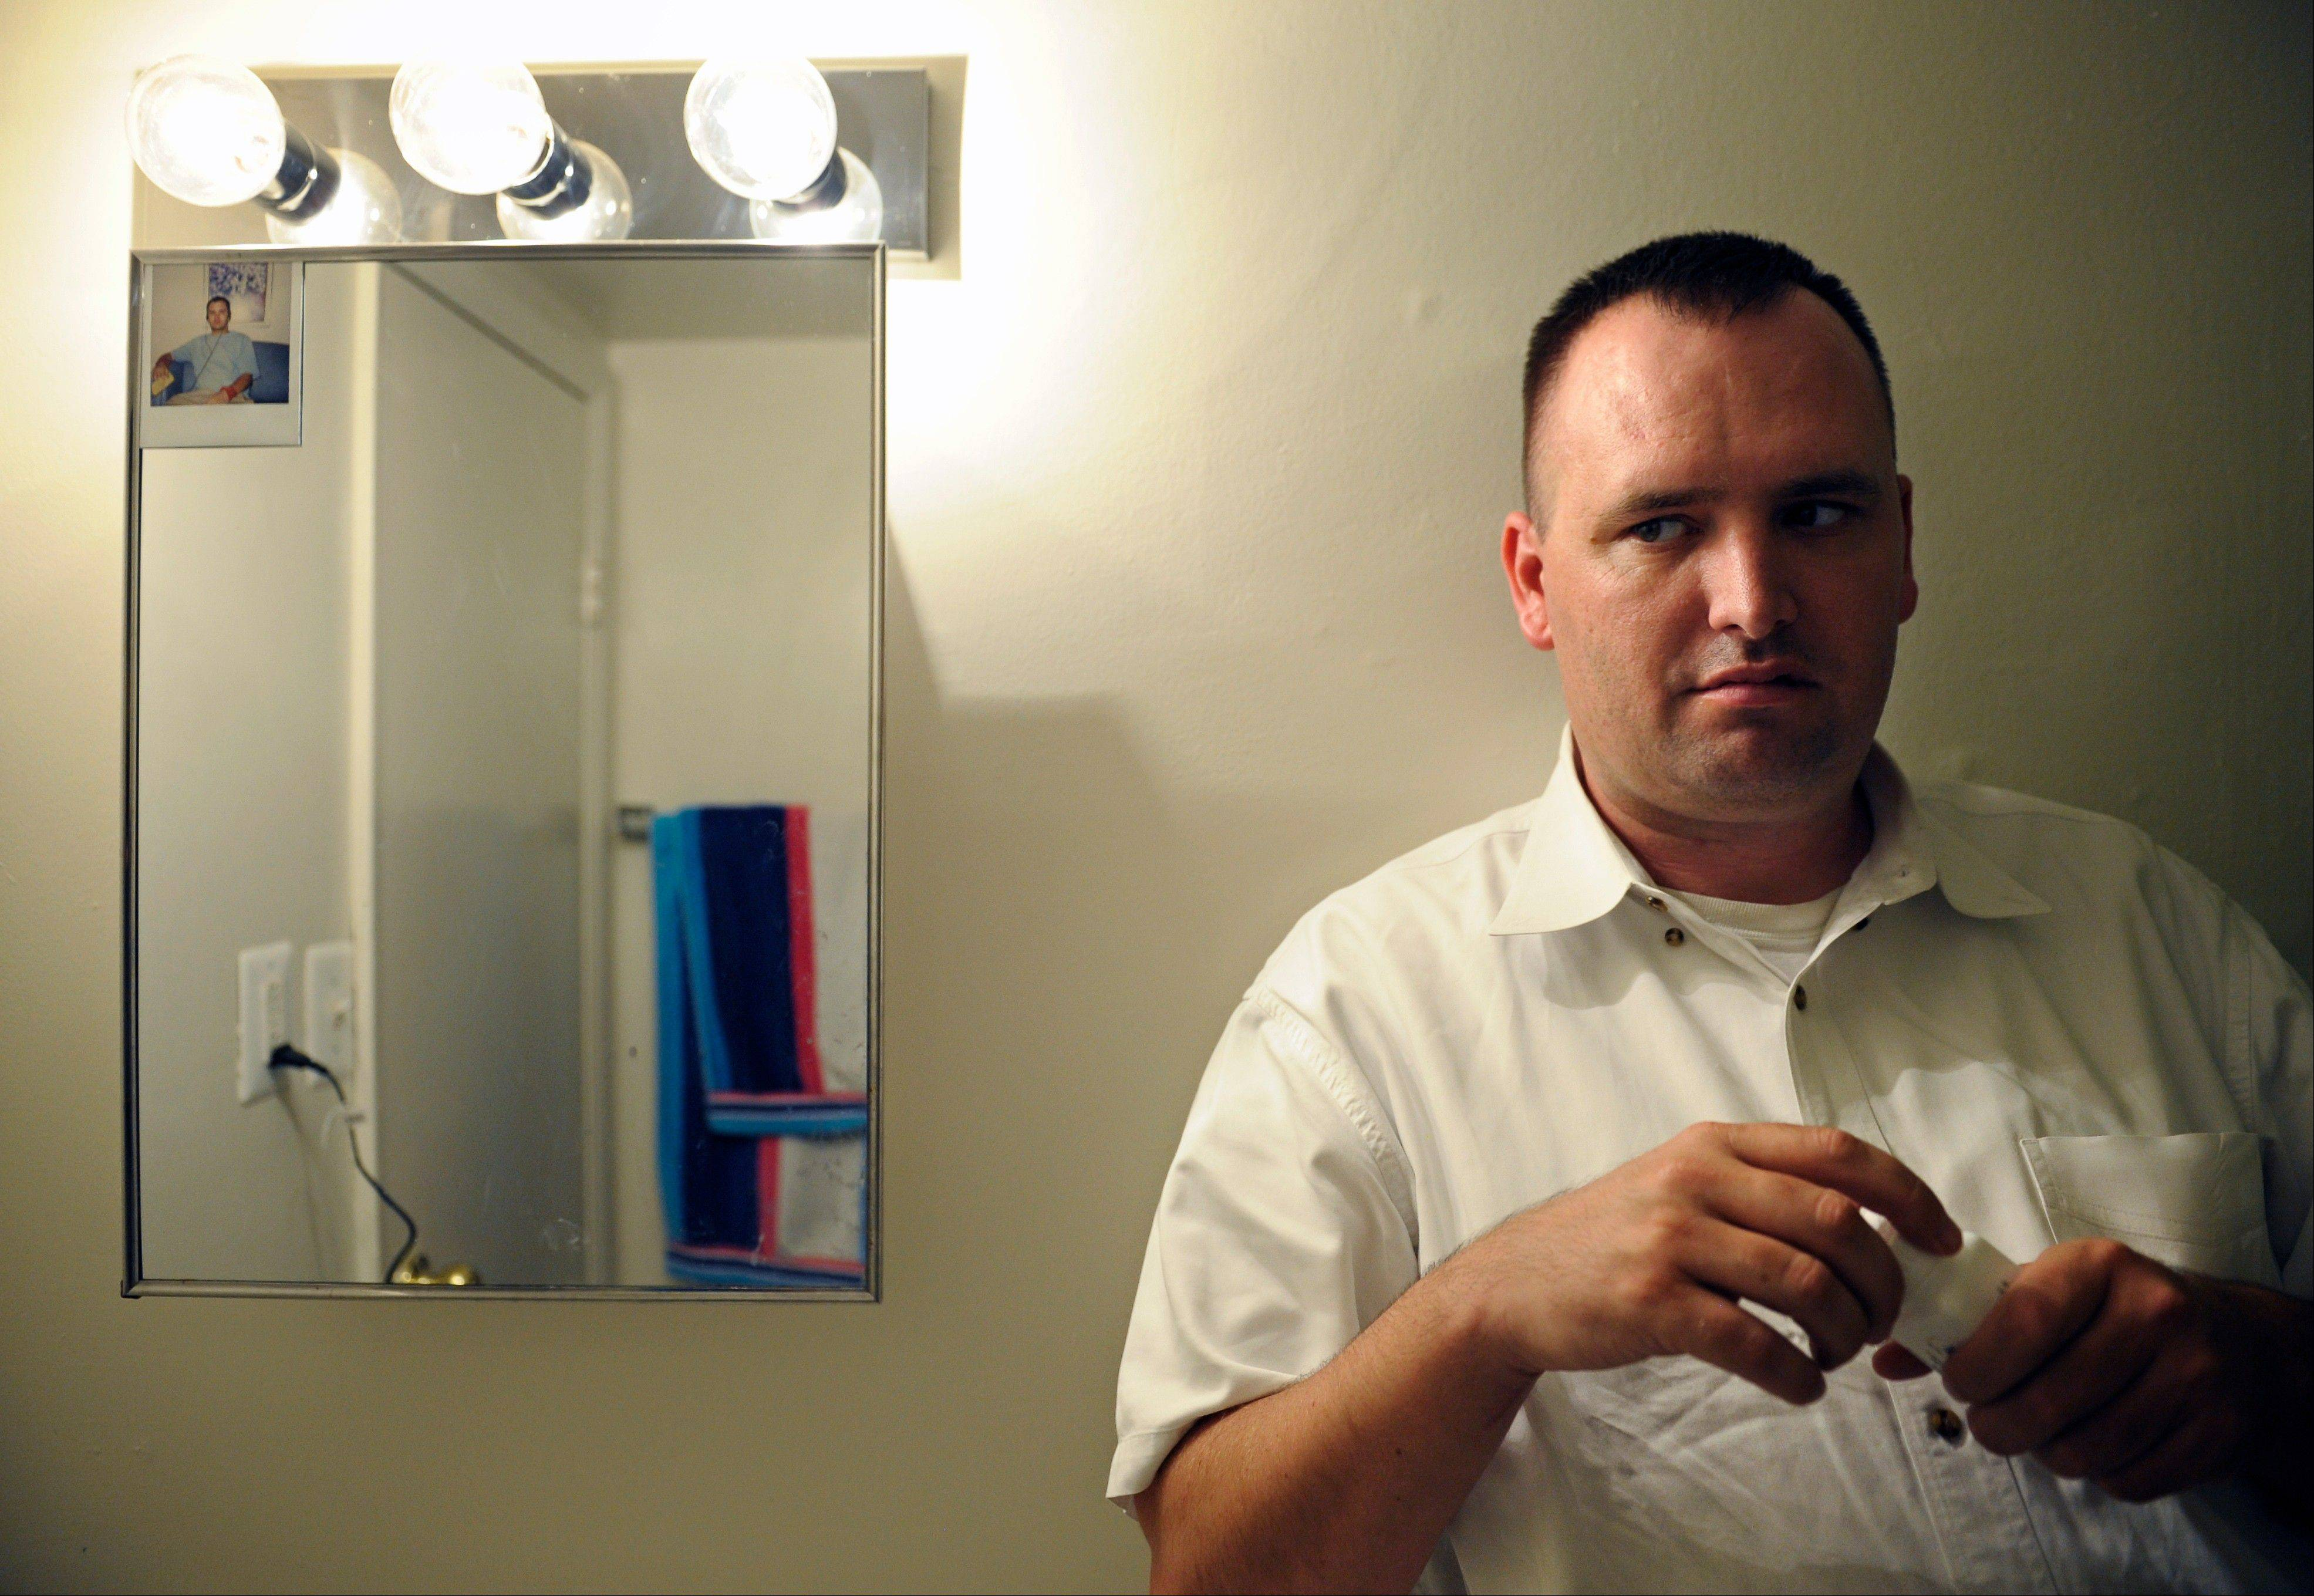 "Kevin Earley, 33, holds a bottle of his antipsychotic medication as he stands next to the medicine cabinet, which has an old photo taped to it, in the bathroom of his apartment that he shares with a roommate. Of the photo, Earley says, ""It reminds me to take my medicine every day and reminds me of where I have been and what I have been through."""